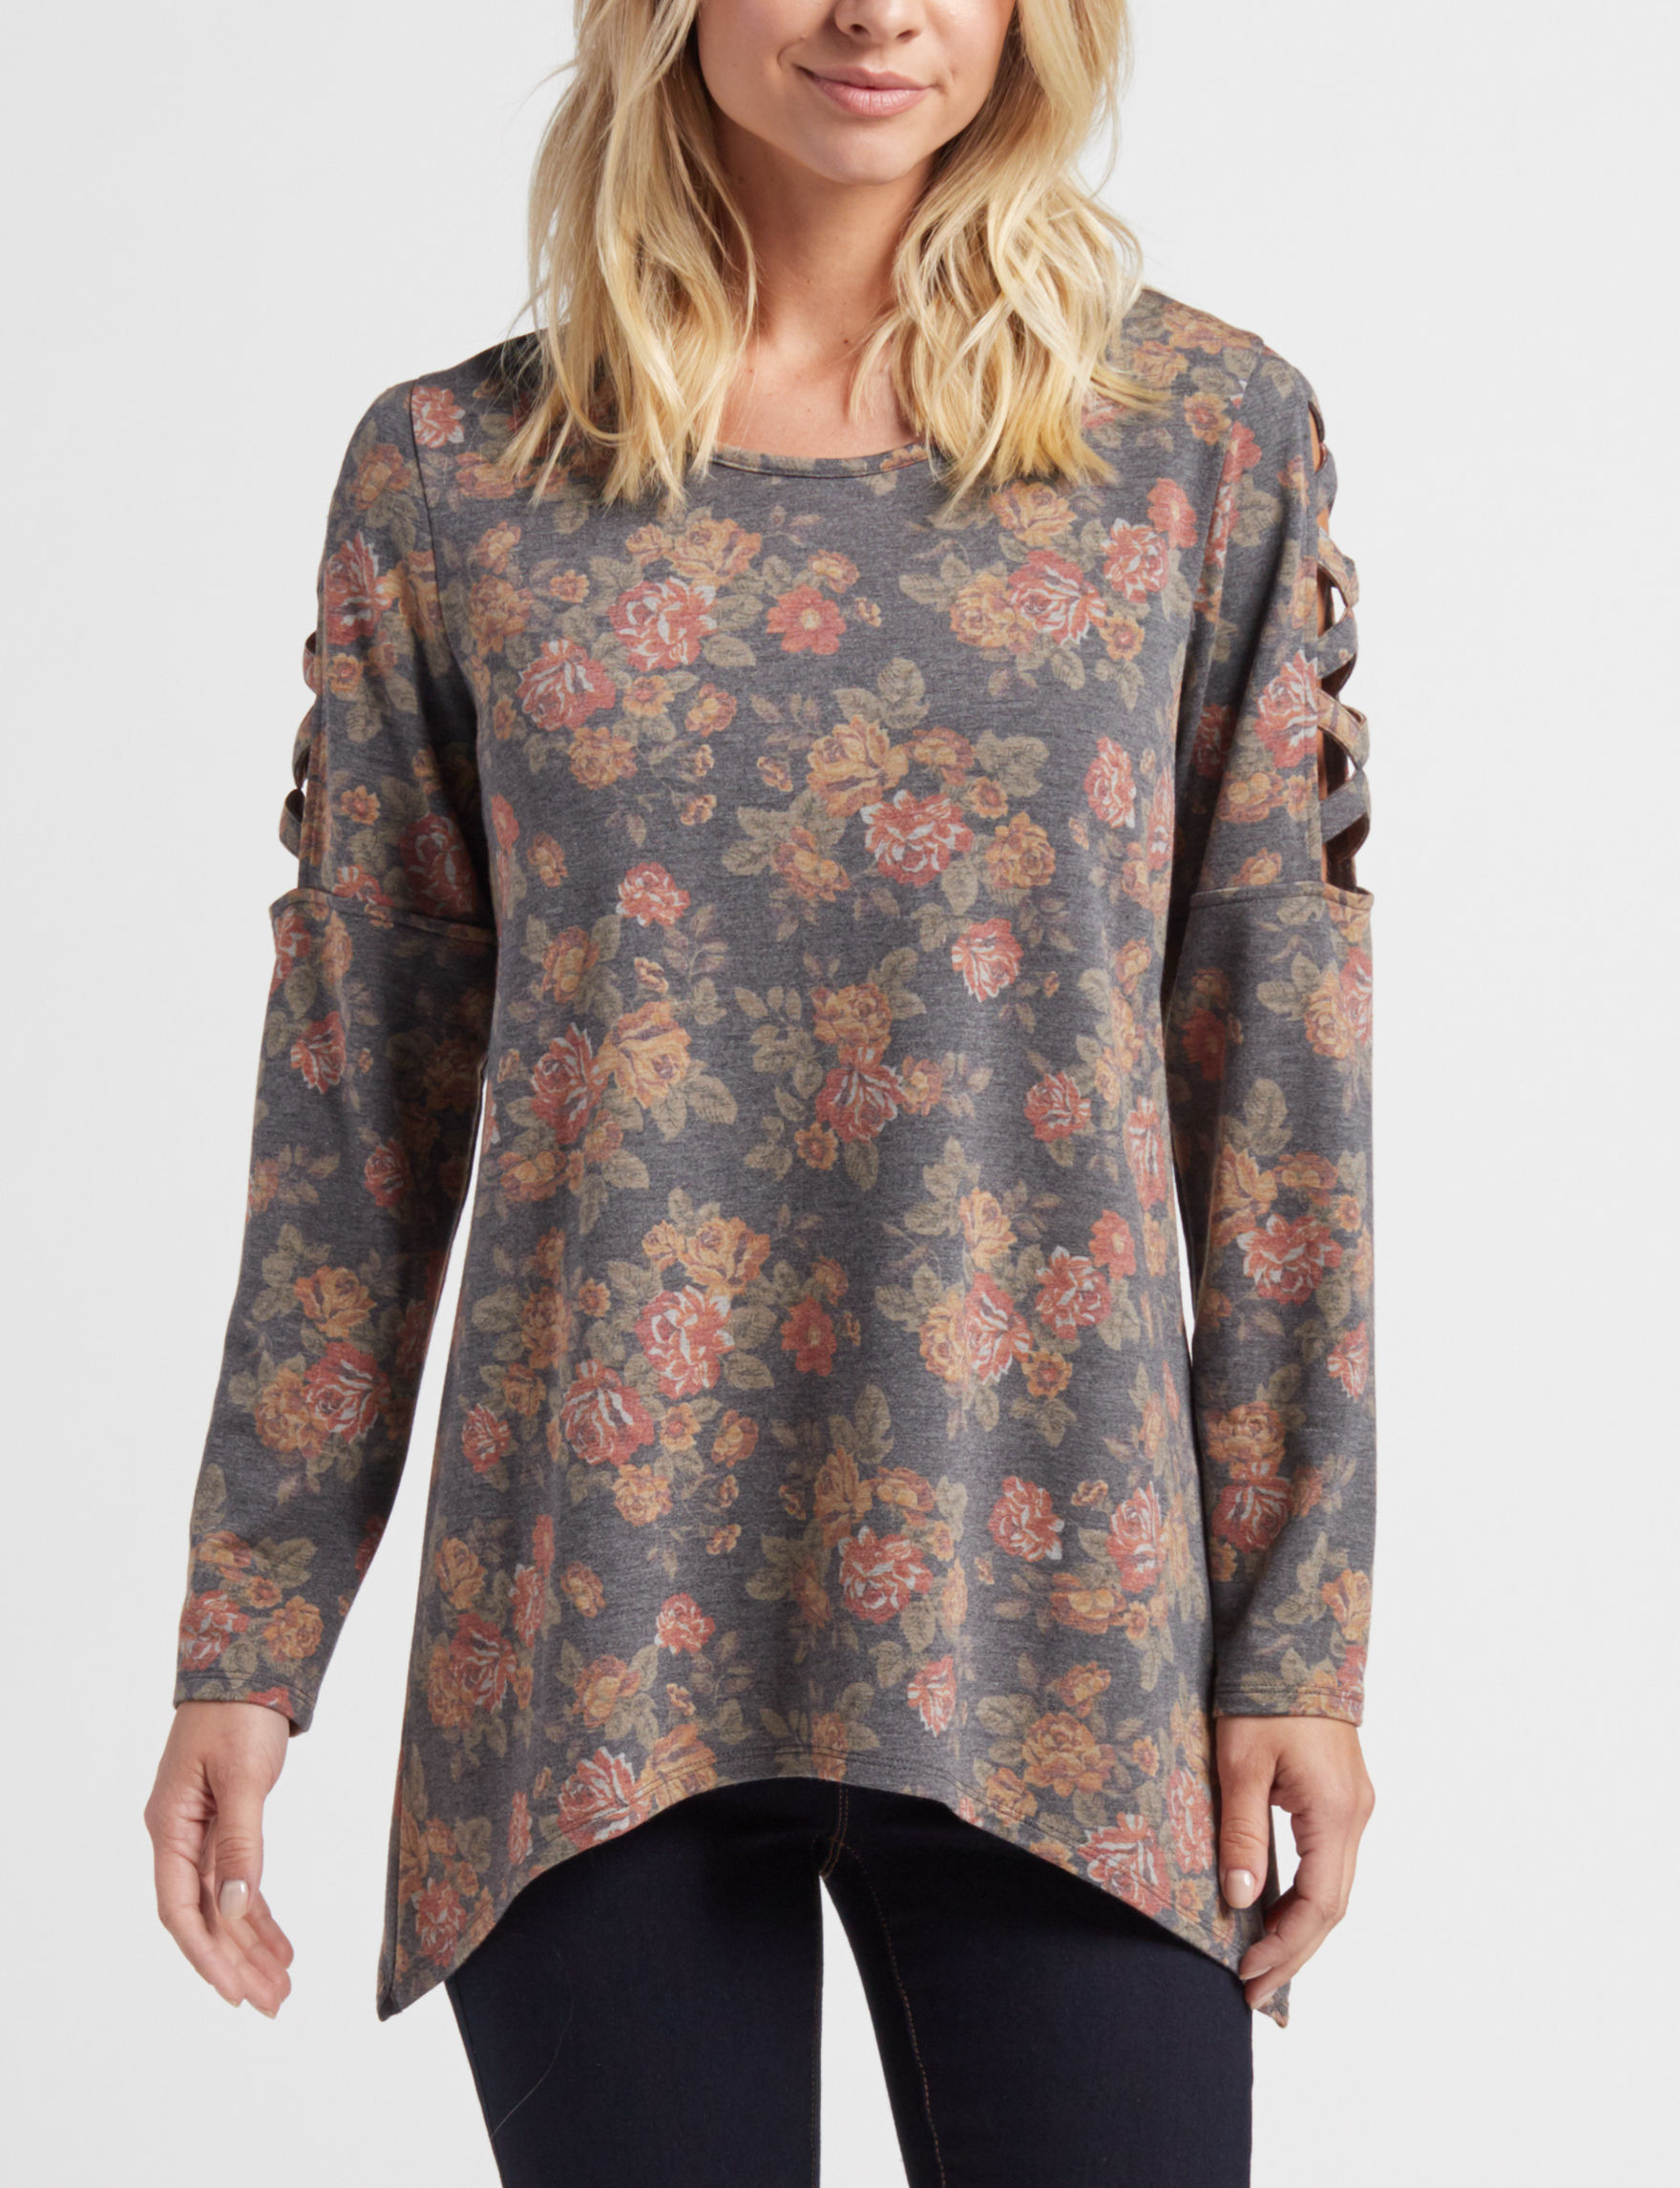 A. Byer Green Floral Shirts & Blouses